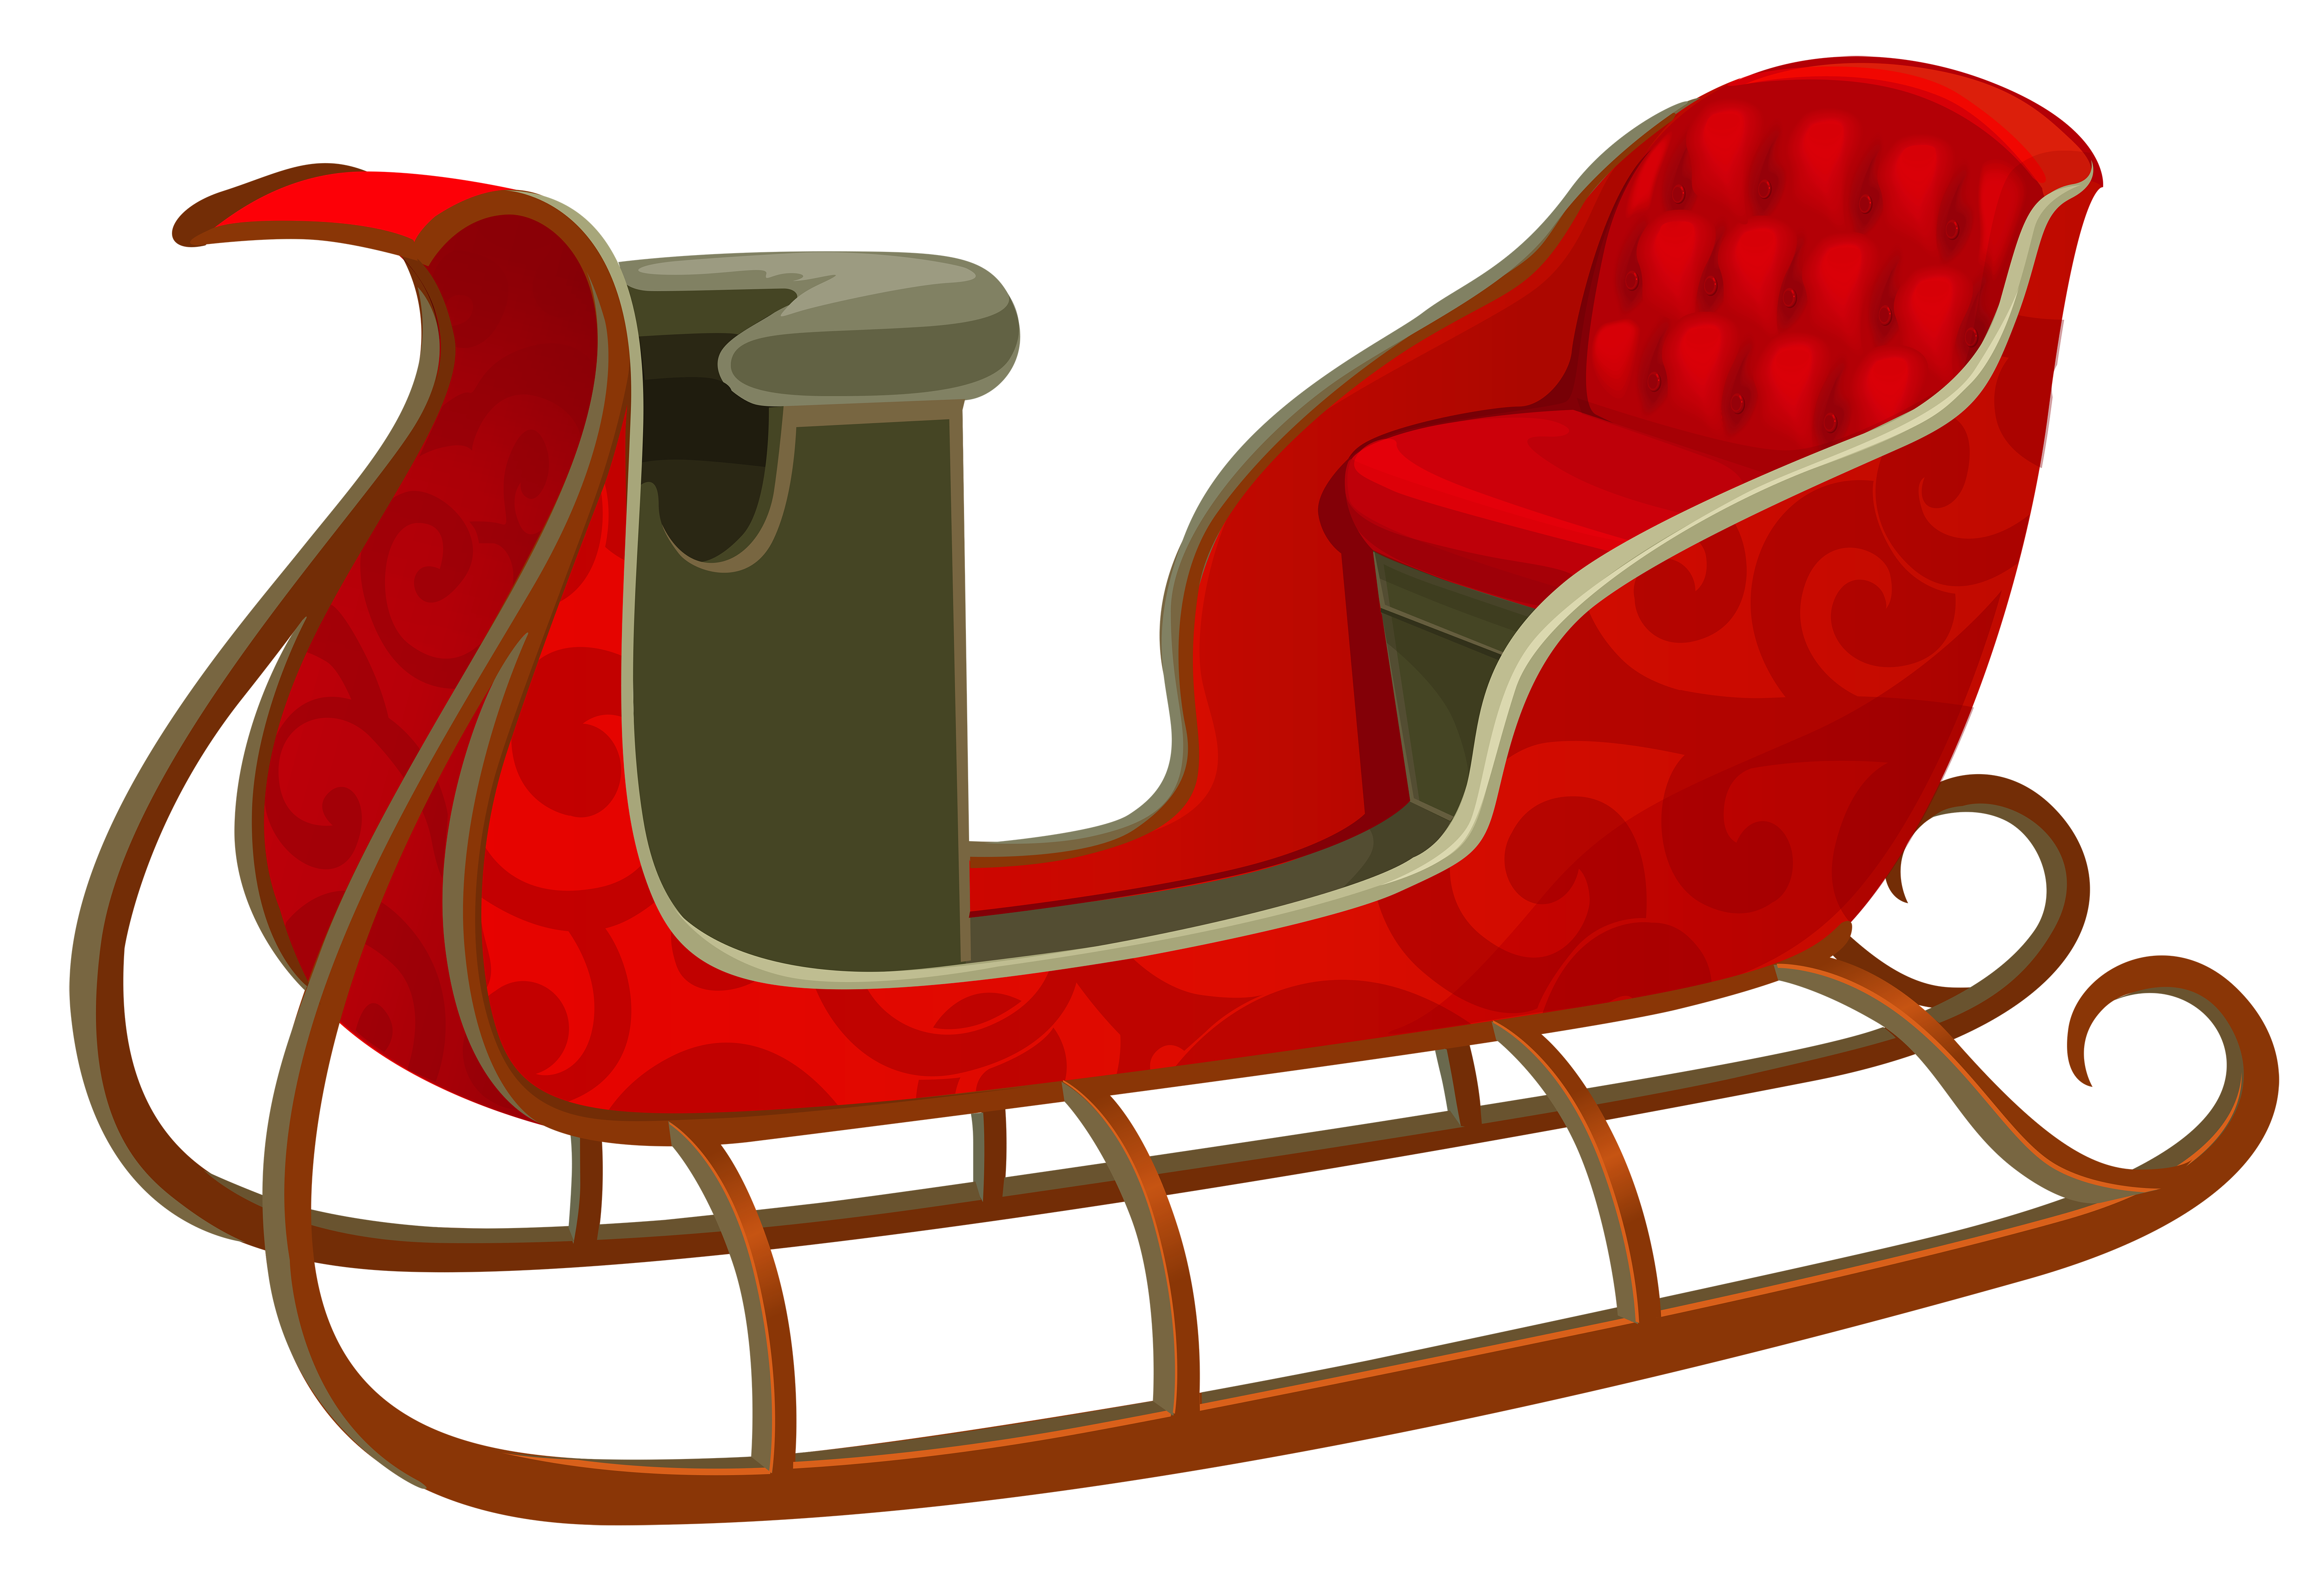 Santa png images free. Sleigh clipart red sleigh